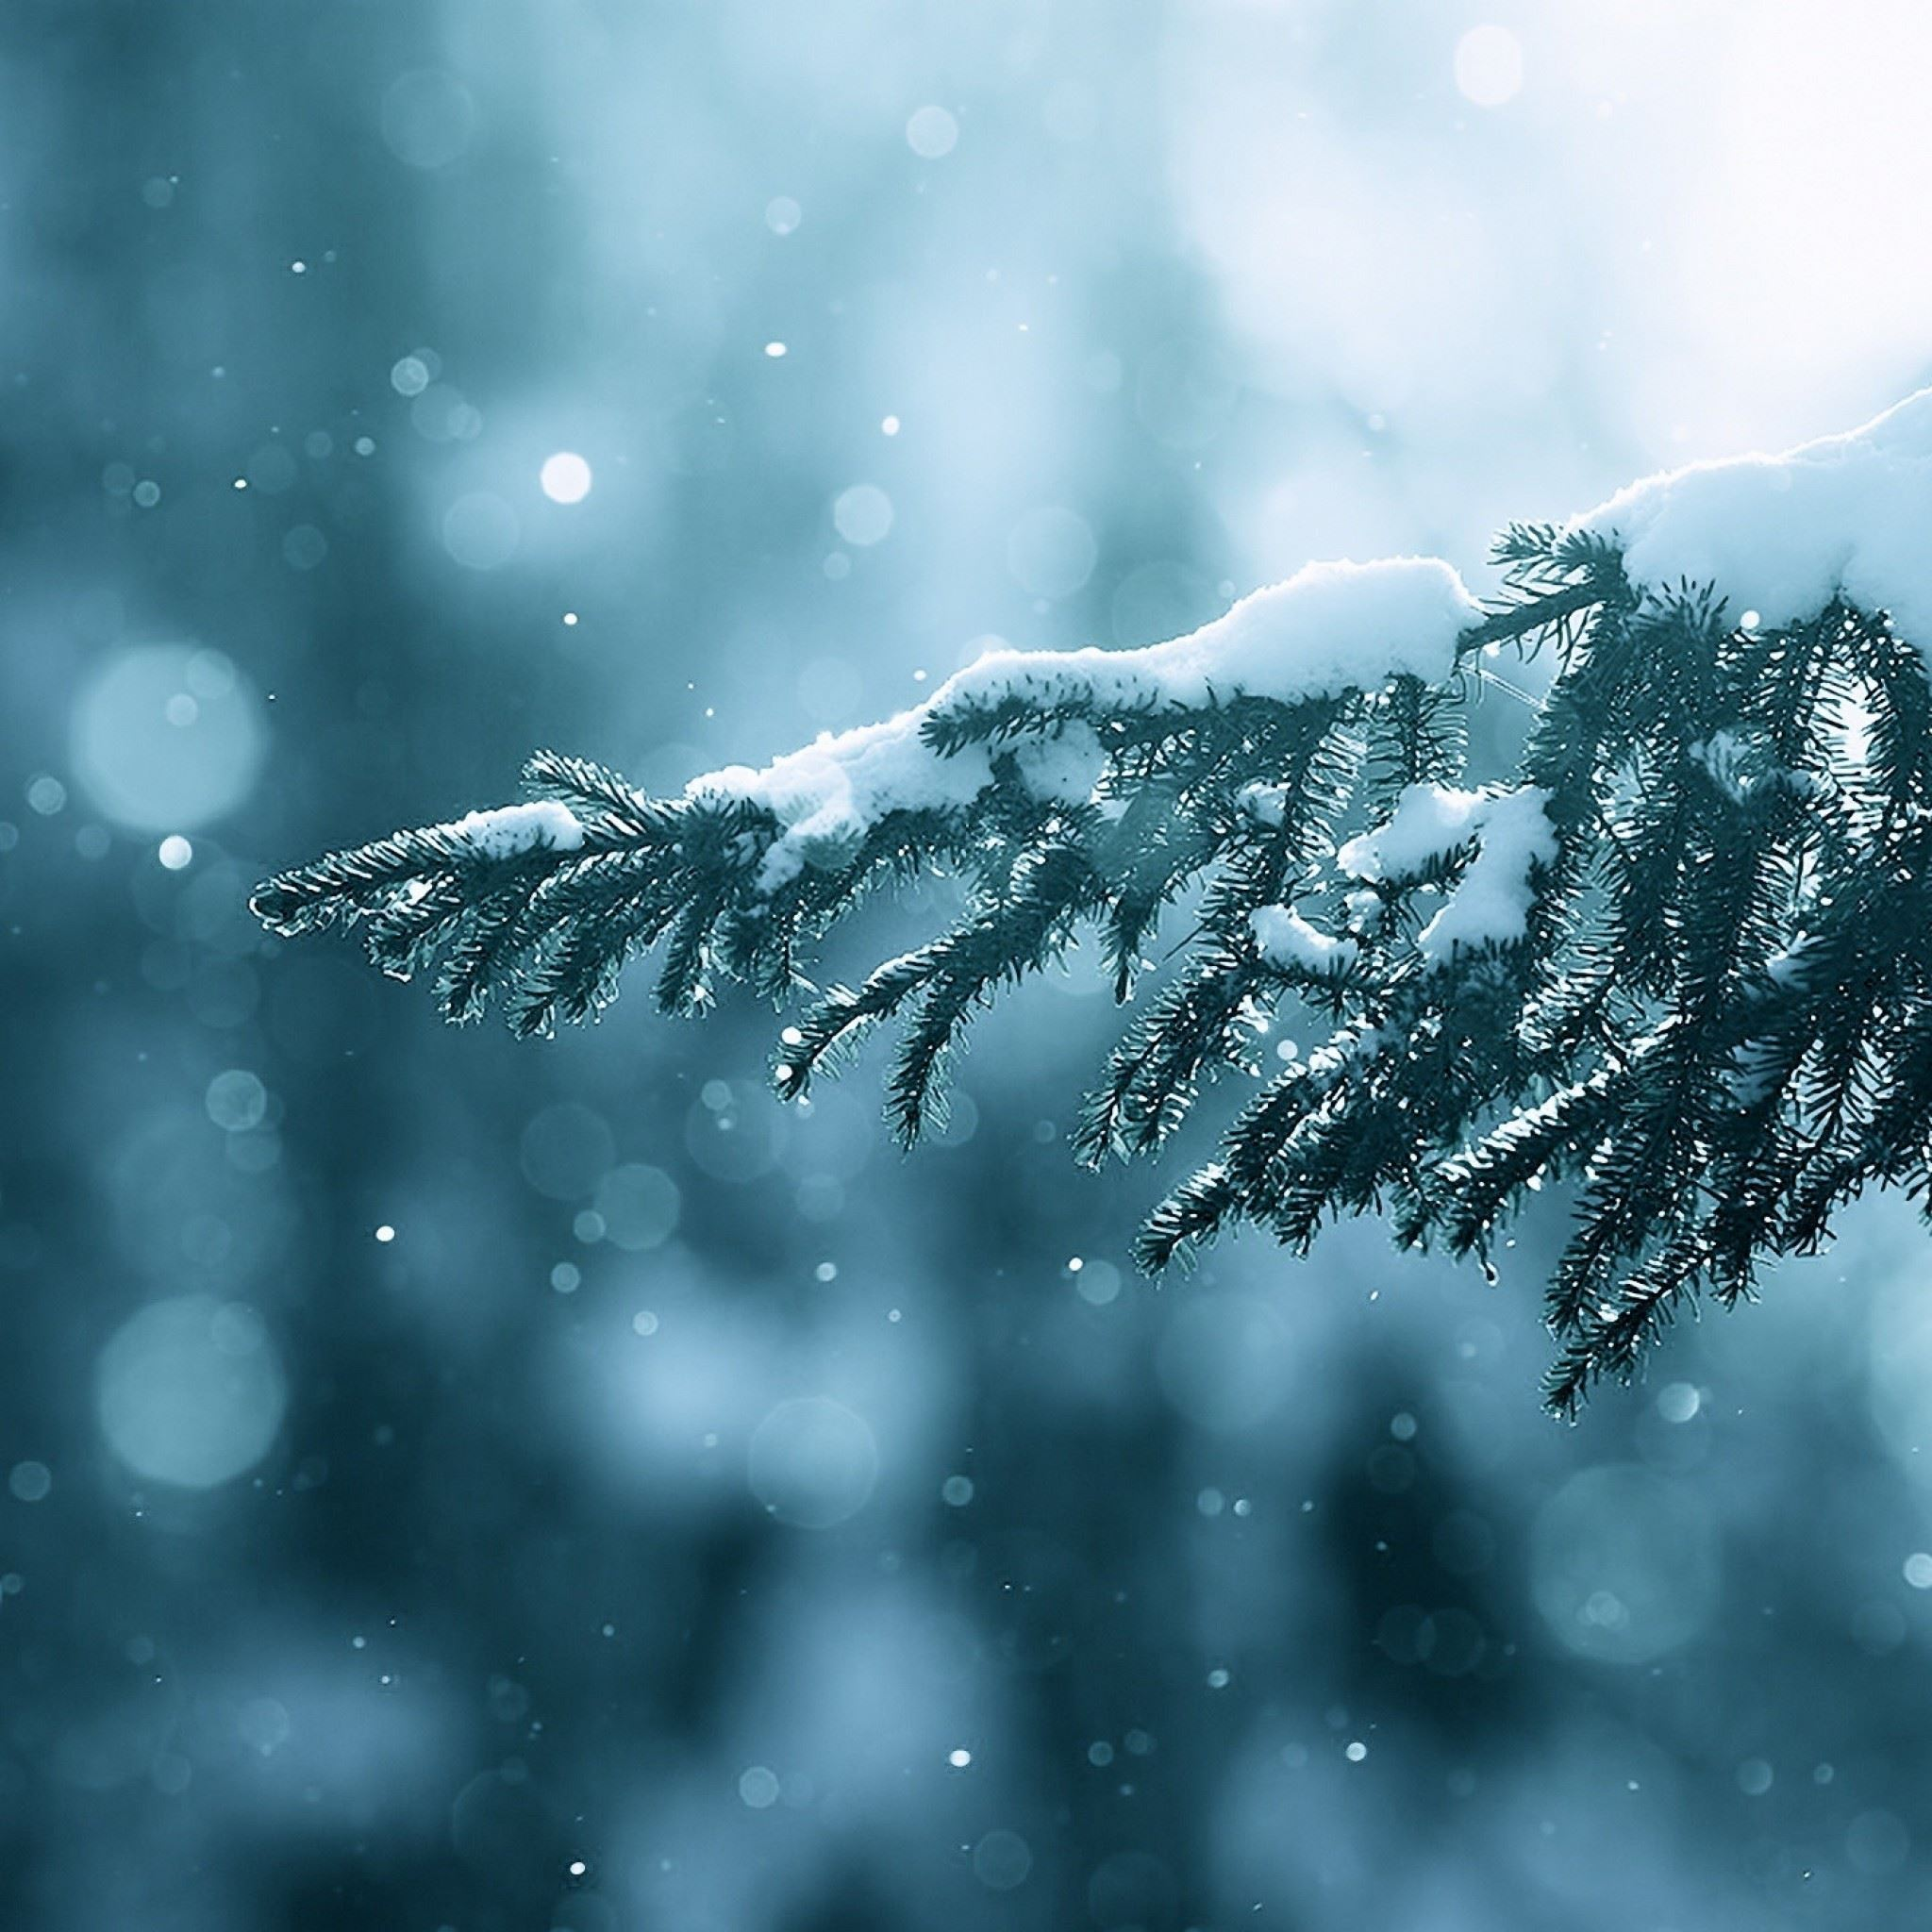 Old Iphone Wallpapers: Winter Season Snow Trees Lens Flare IPad Air Wallpaper